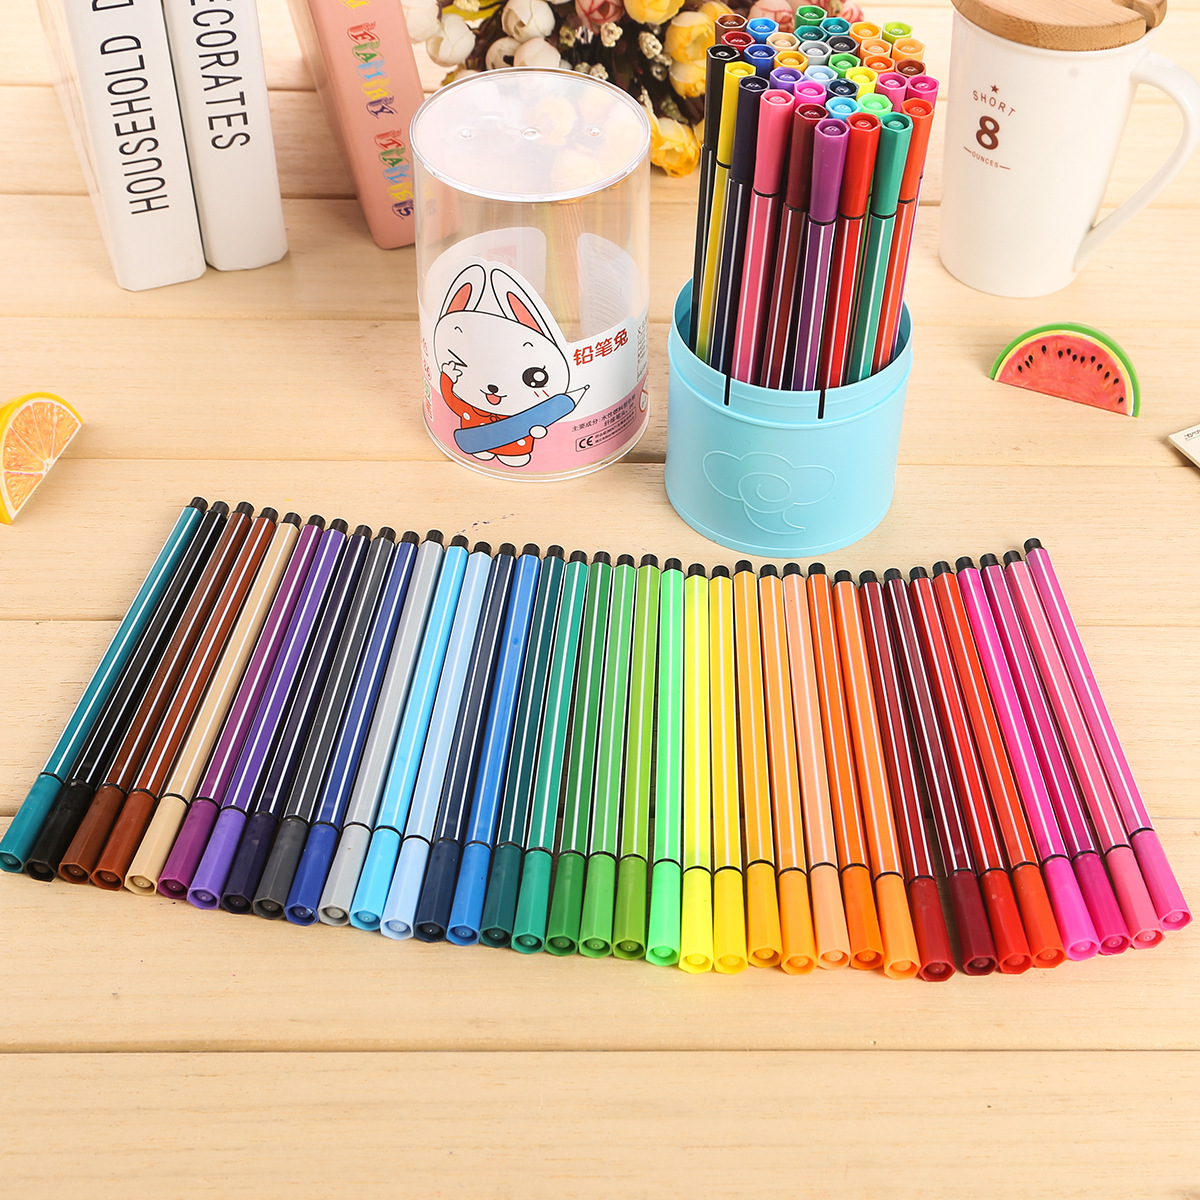 36 color/set can water wash watercolor pen children painting paintbrush Art supplies Barreled drawing tools Cartoon Graffiti Pen children s paintbrush sets painting supplies painting tools children crayon watercolor pen art stationery 110 pieces set